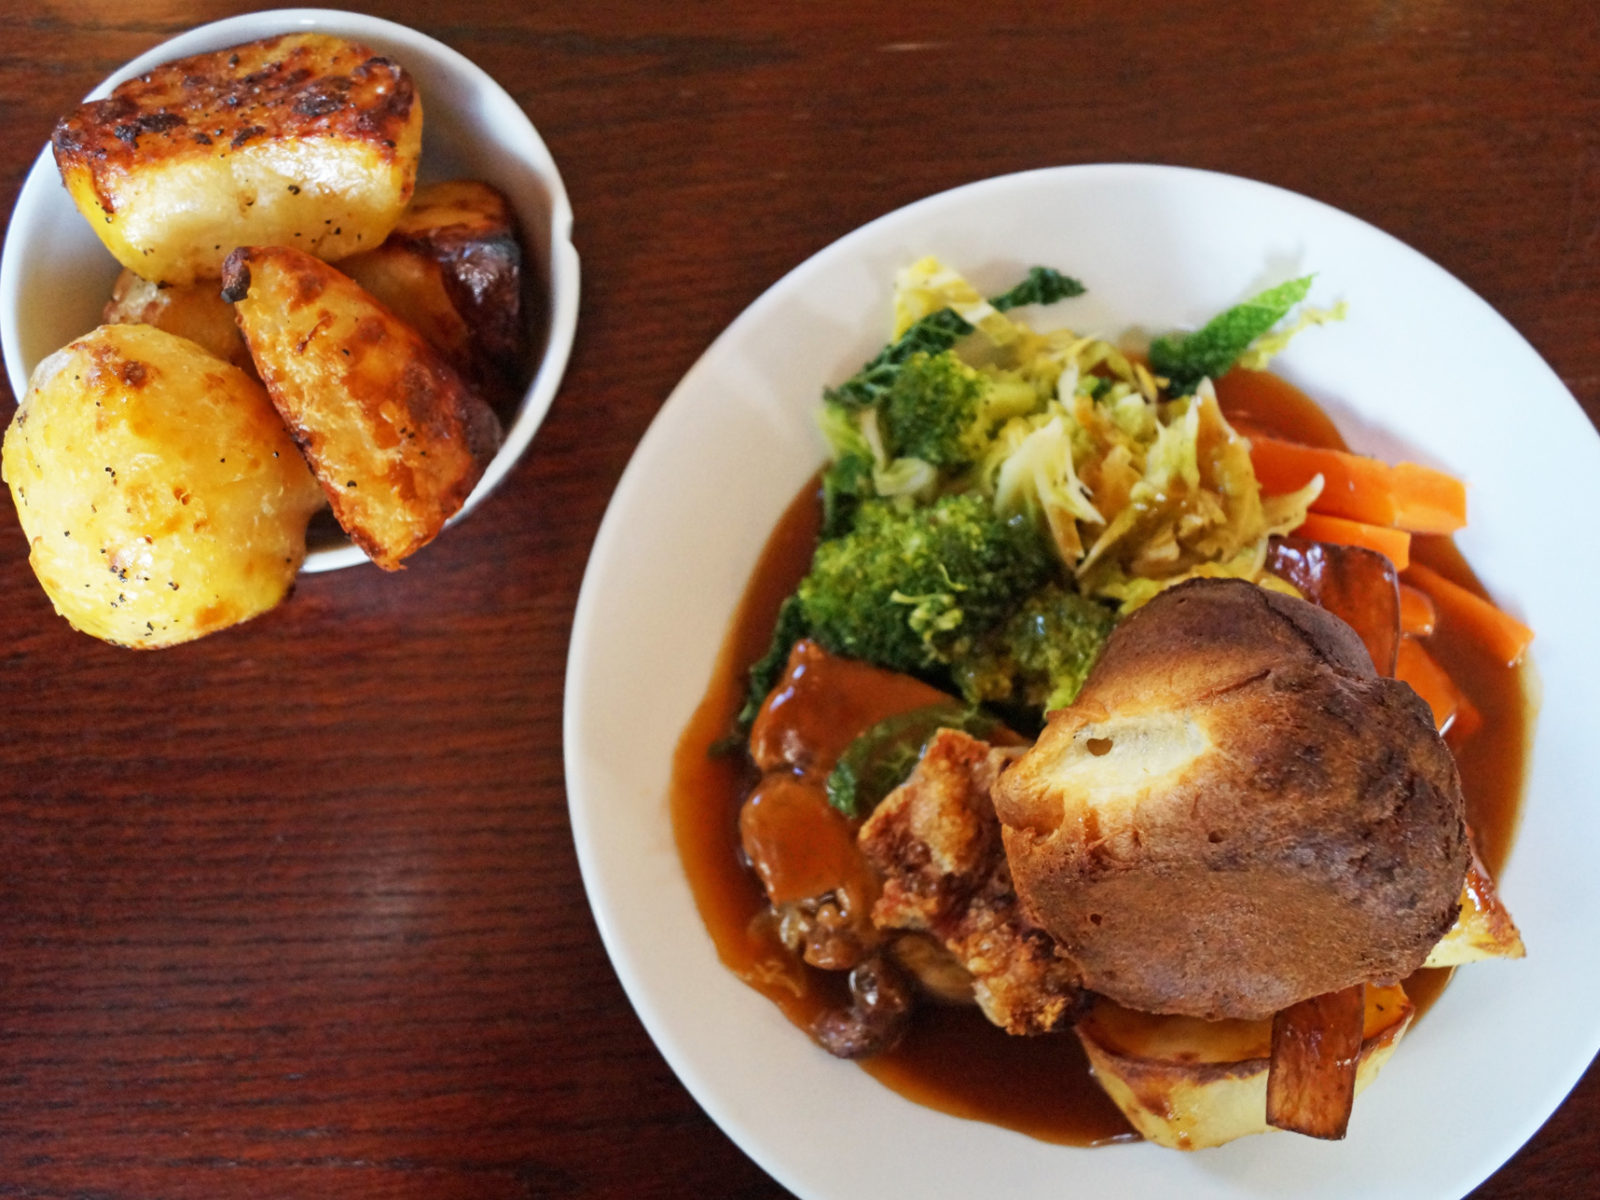 Our Beef Roast with roast potatoes